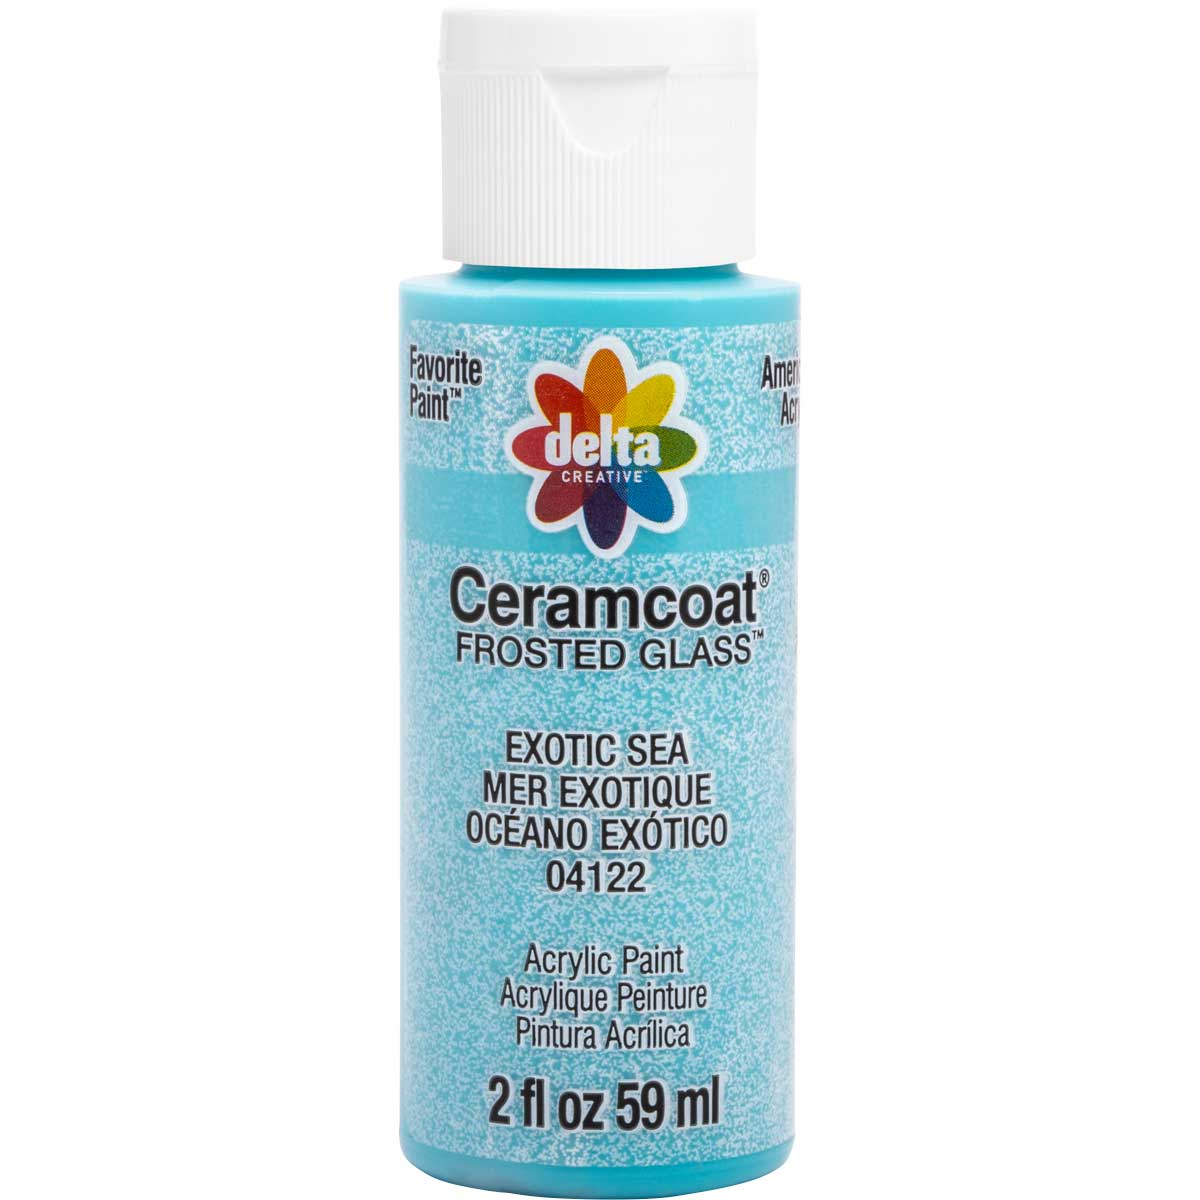 Delta Ceramcoat ® Frosted Glass Paint - Exotic Sea, 2 oz. - 04122